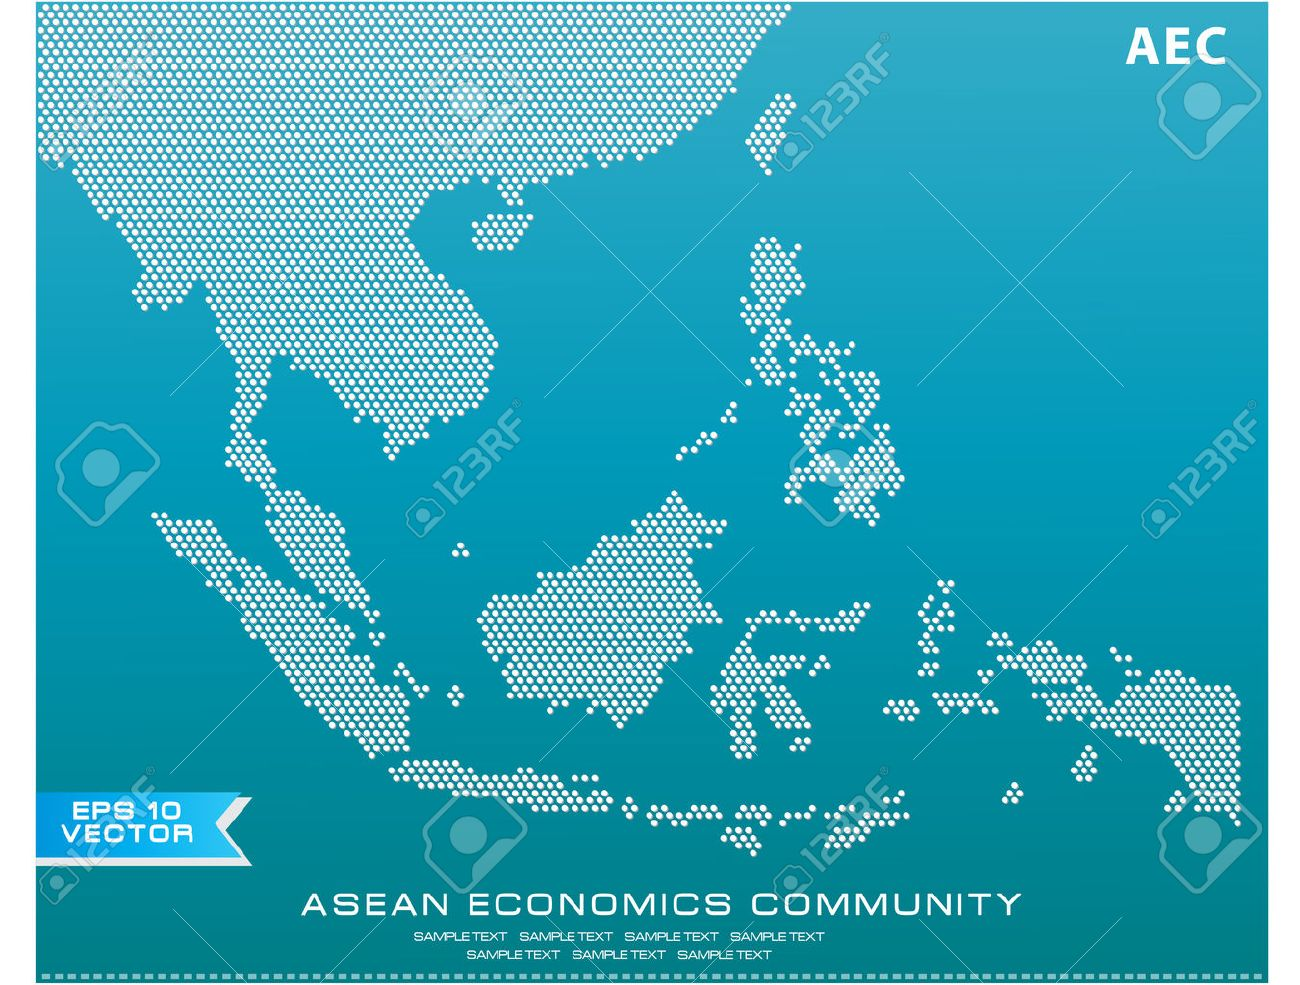 Asean Map dotted style illustration, for background (AEC, AFTA, ASEAN), easy to modify - 36129991